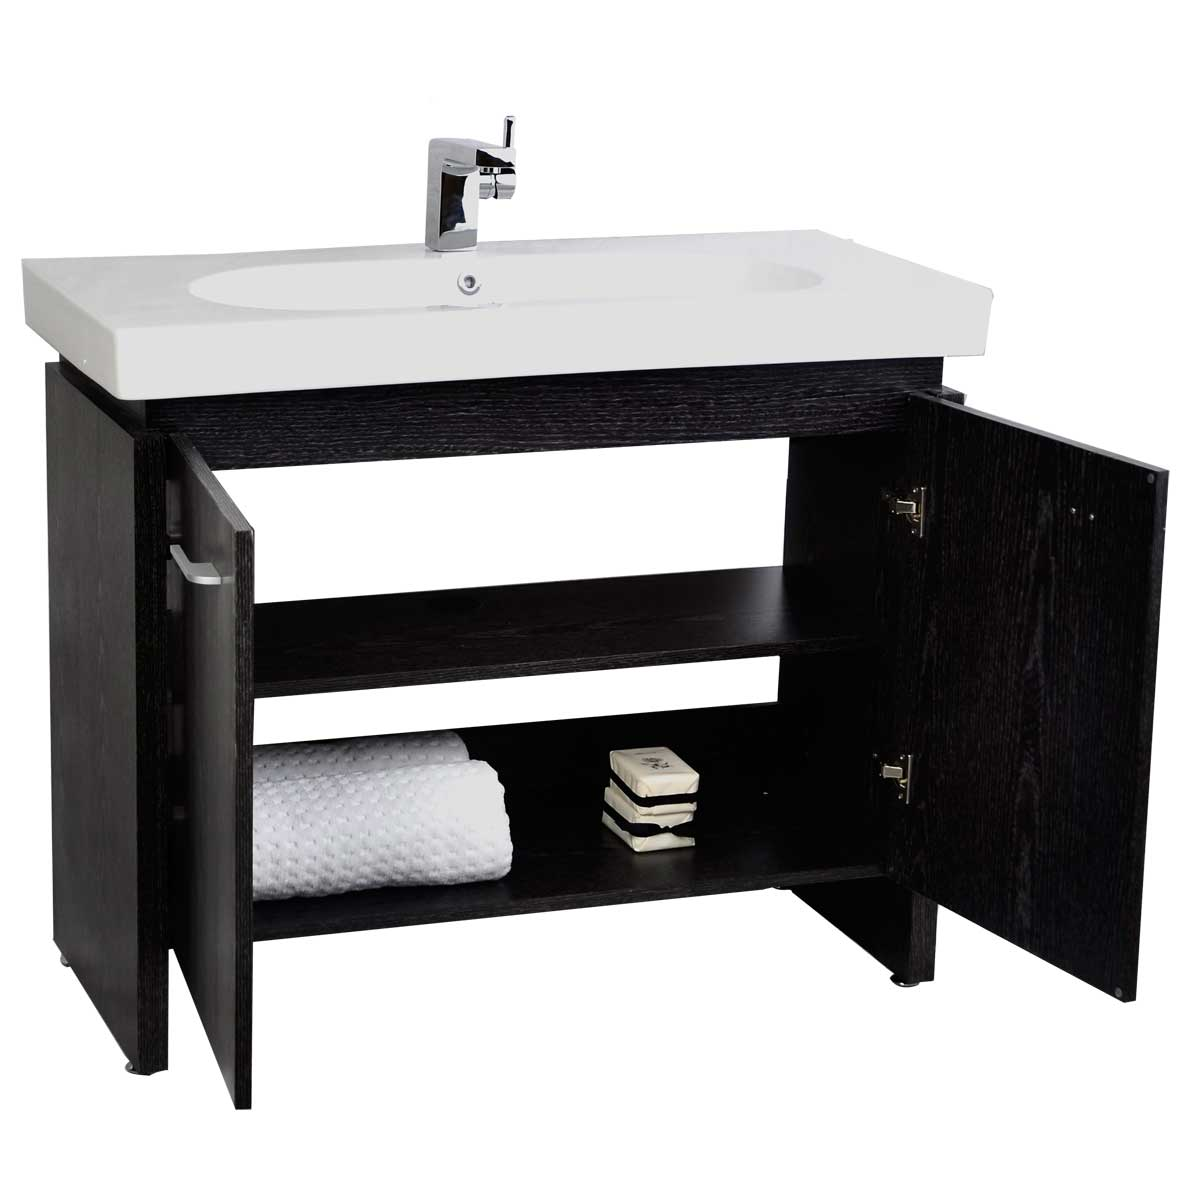 Single Bathroom Vanity With Porcelain Sink San Francisco